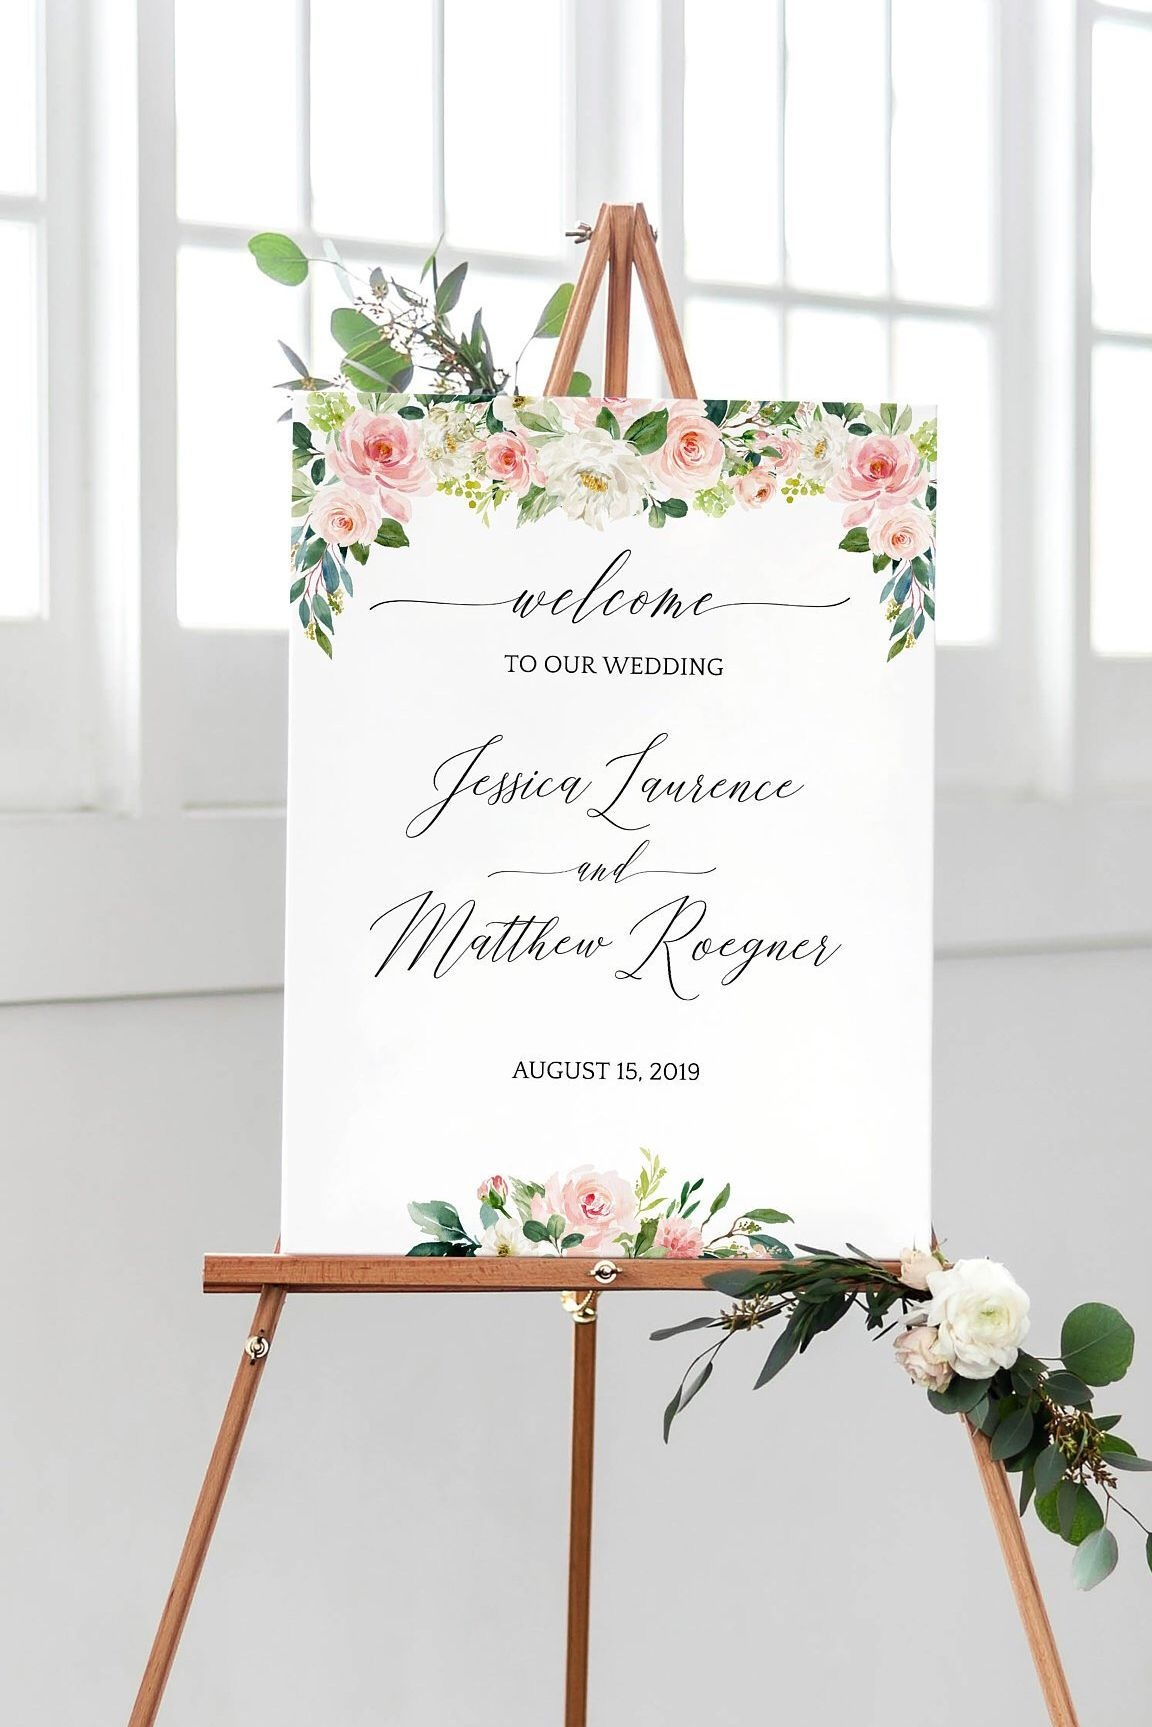 015 Wedding Welcome Sign Template Phenomenal Ideas To Our Free Etsy - Free Printable Welcome Sign Template